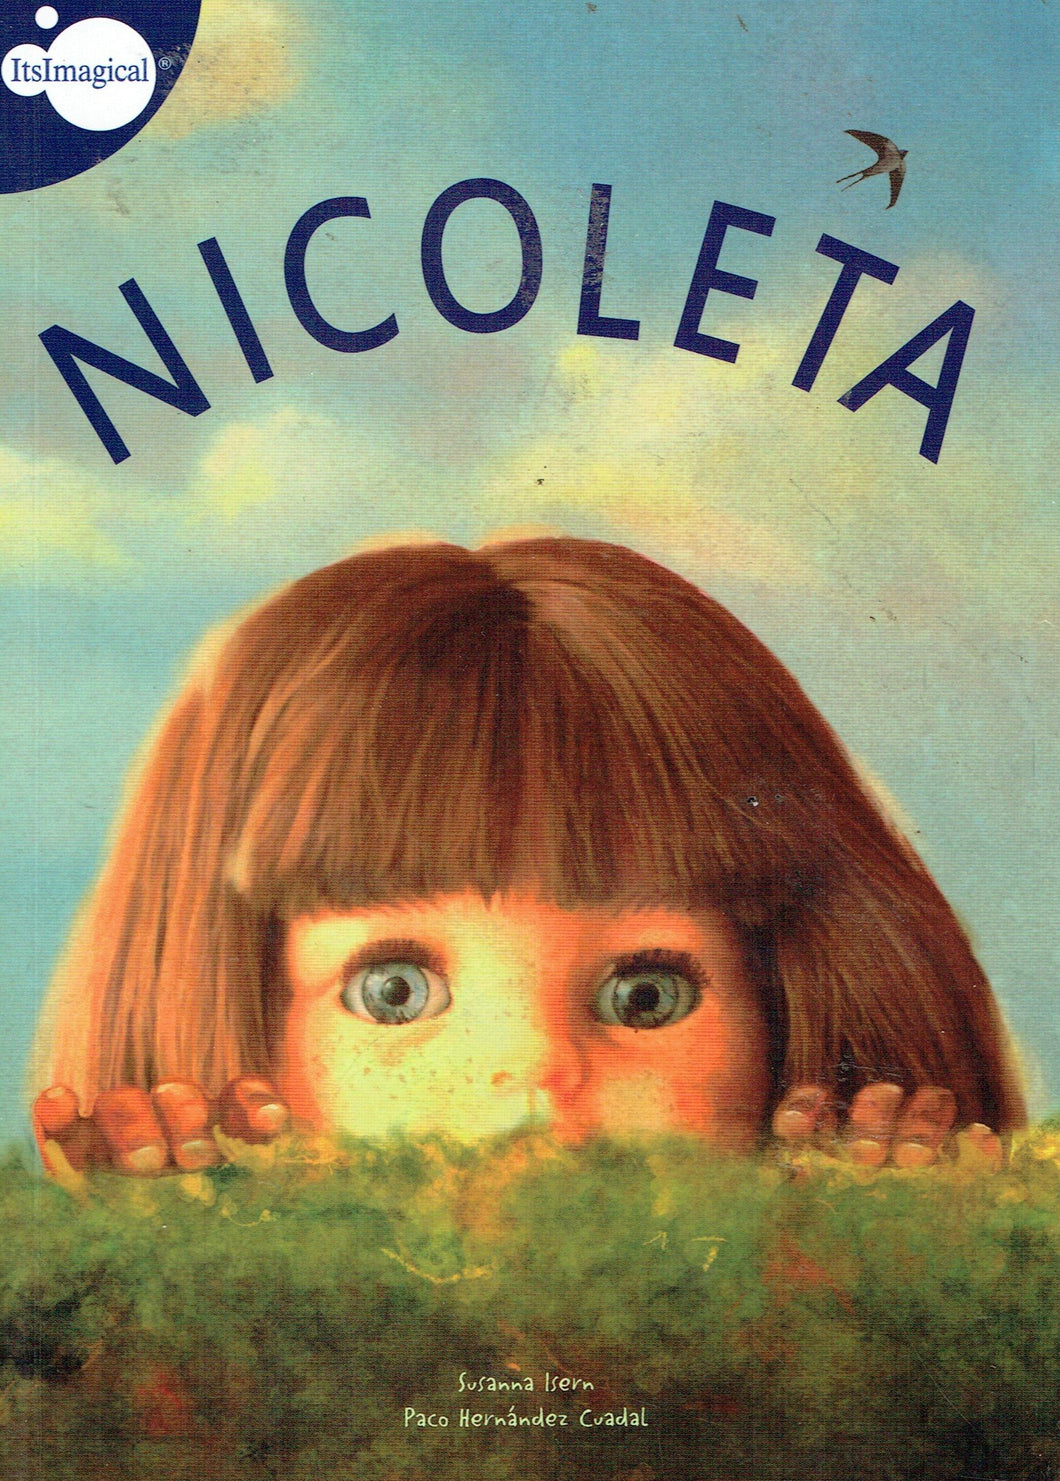 Nicoleta: And the Mystery of the Missing Toys